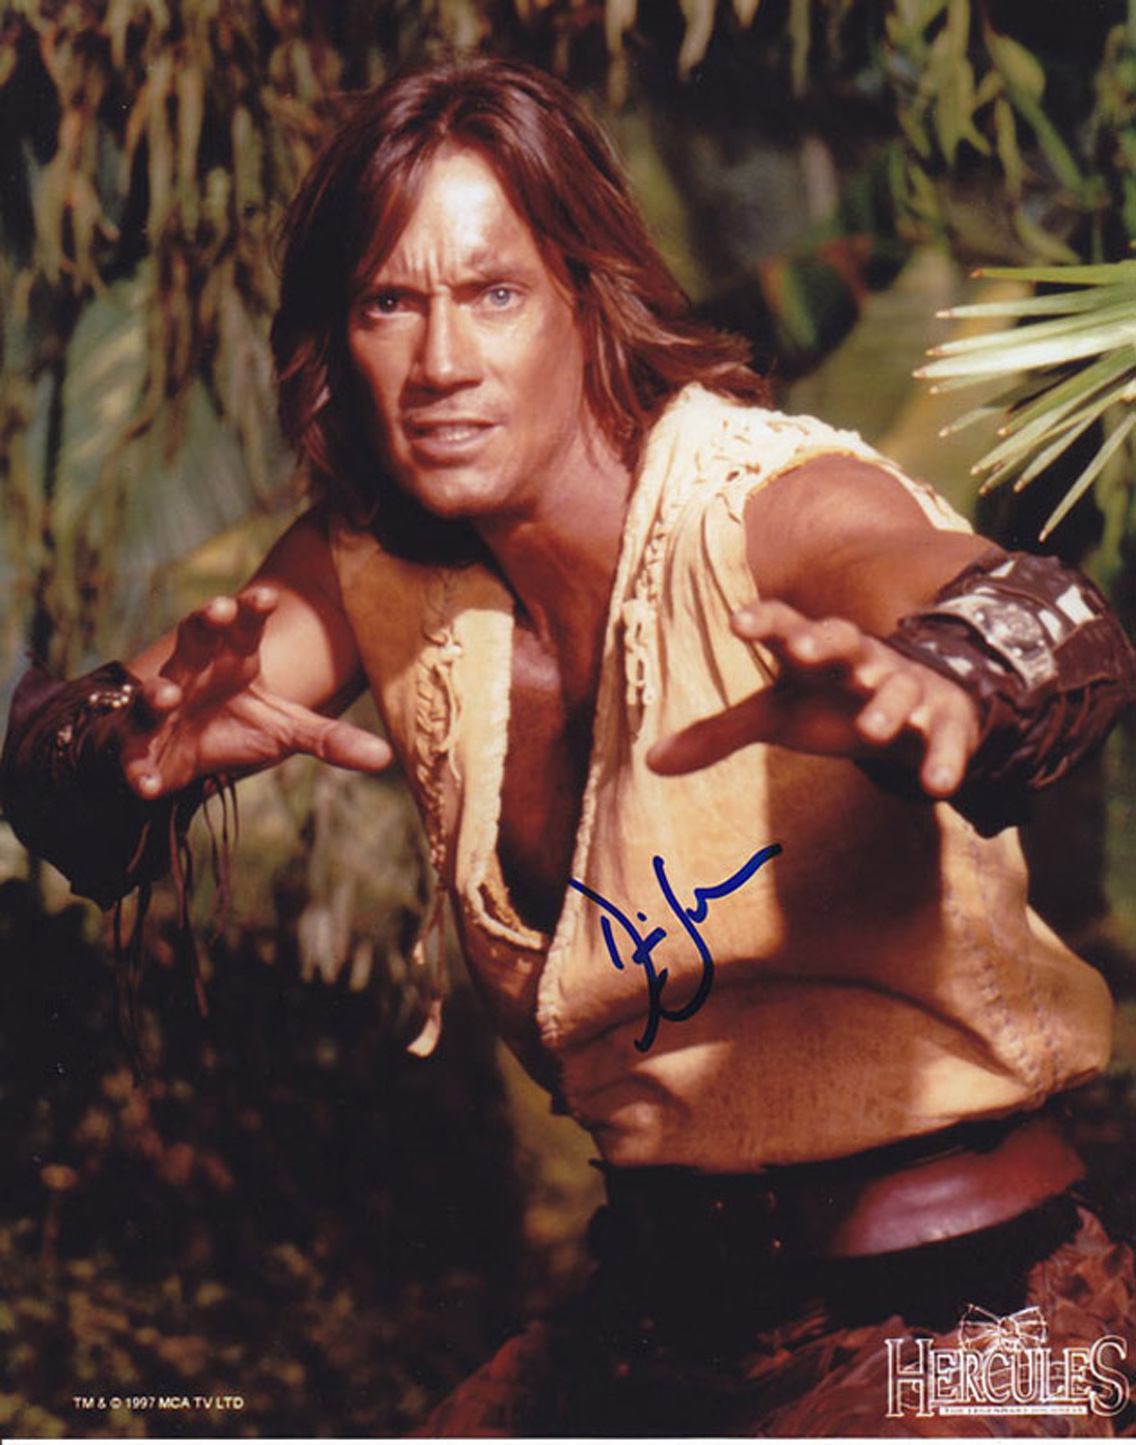 Blowout Sale! Hercules Kevin Sorbo hand signed 10x8 photo. This beautiful 10x8 hand signed photo